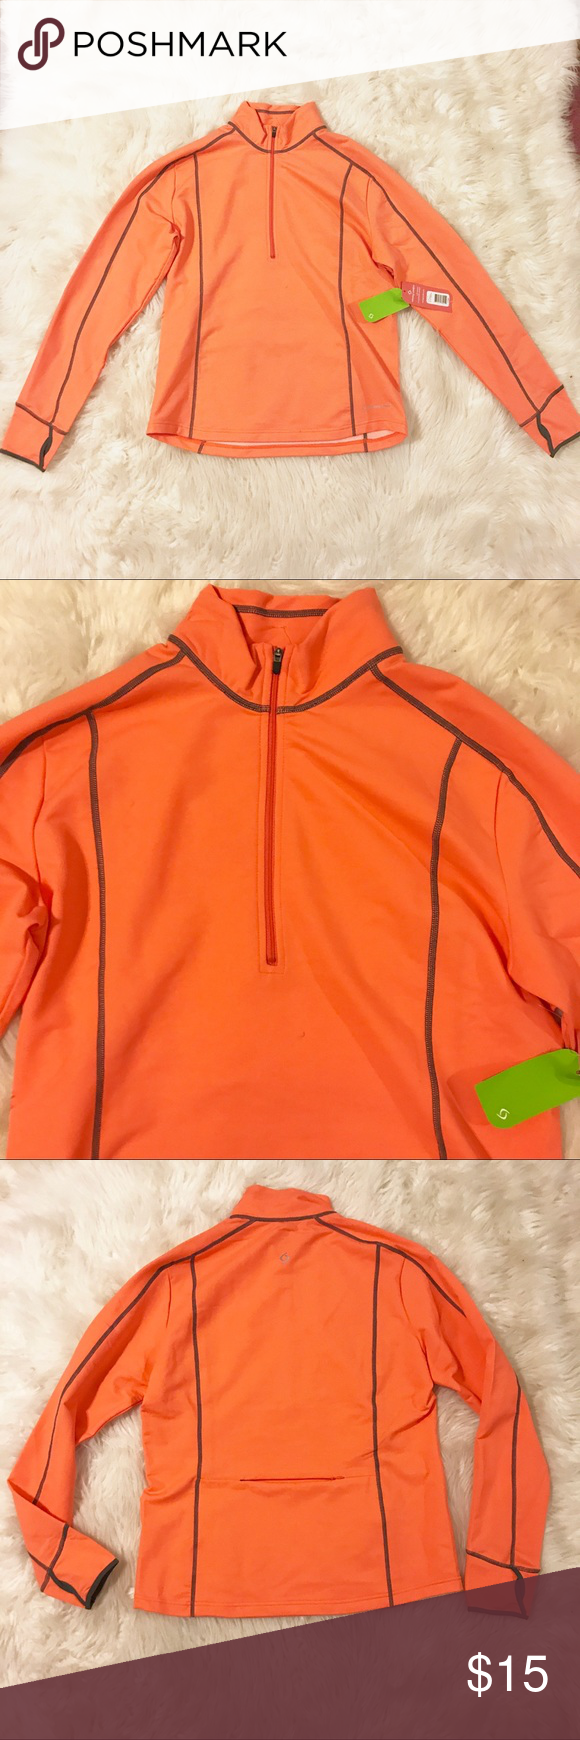 3/$30 🆕Women's running top moving comfort Brand new. Tags attached. Never worn.   Neon peach/nectar color with gray stitching. Pullover with a slight turtleneck. Zipper to make the top collared.   Stretchy material. Long sleeves with holes for thumbs for extra warmth. Small pocket at the lower back that zips.   Made of nylon, polyester, and Lycra  Retails for $65 Moving Comfort Sweaters